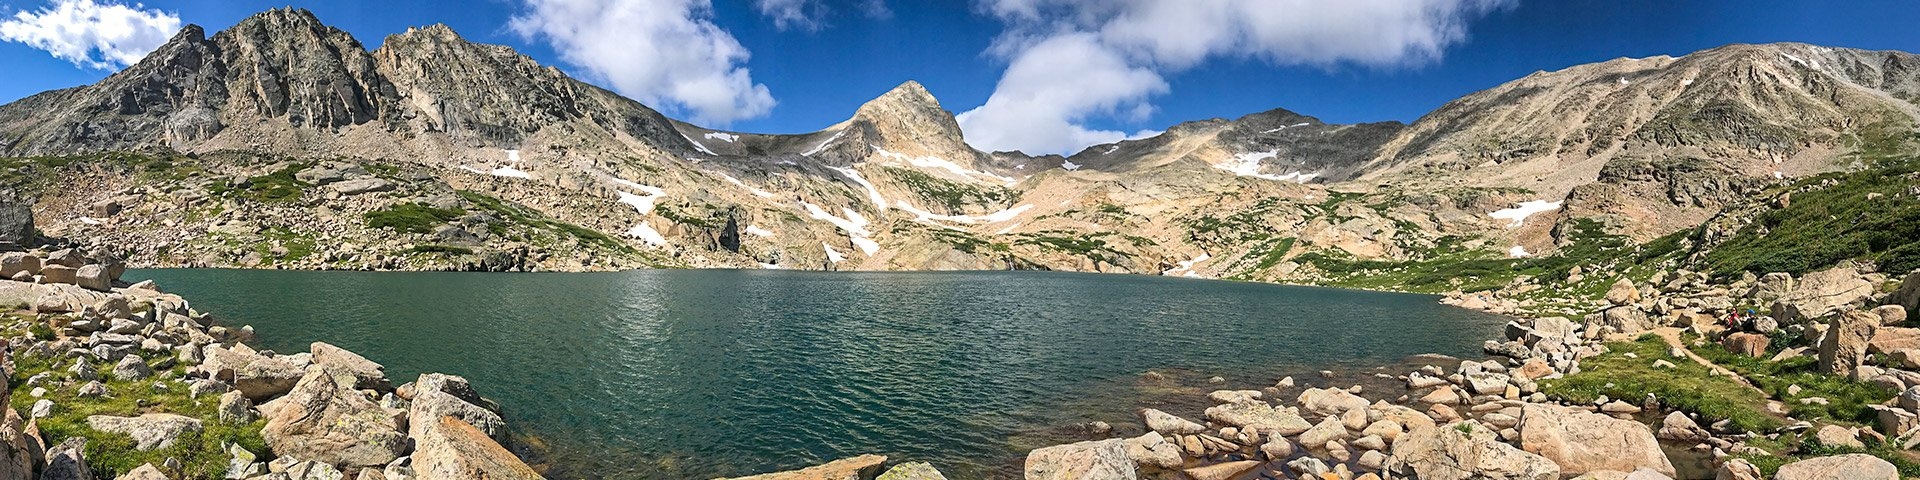 Best hikes in Indian Peaks